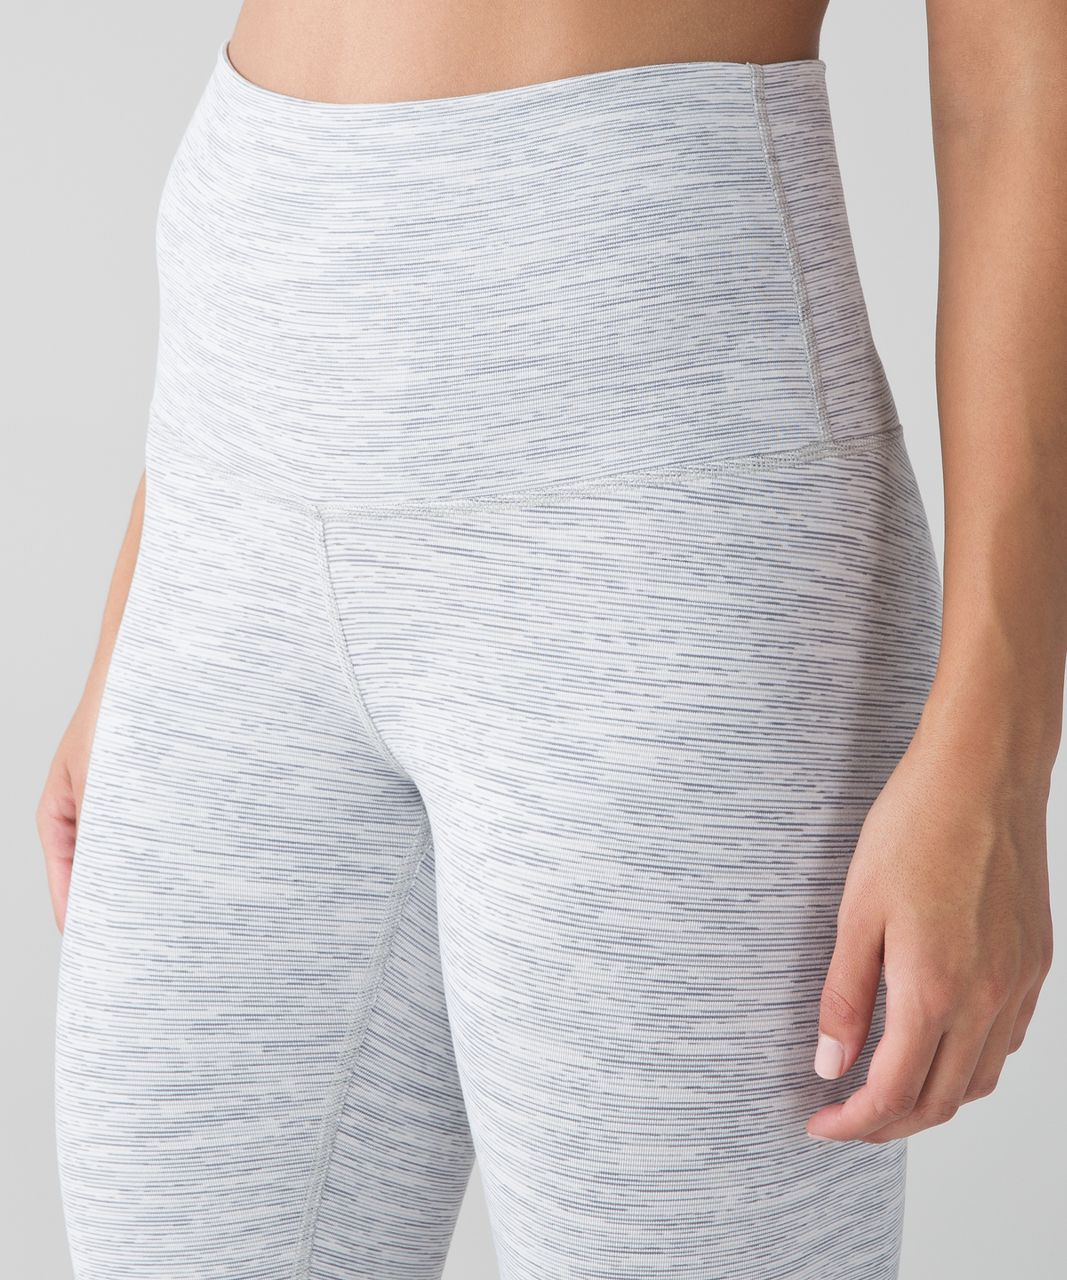 Lululemon Wunder Under Crop (Hi-Rise) - Wee Are From Space Nimbus Battleship